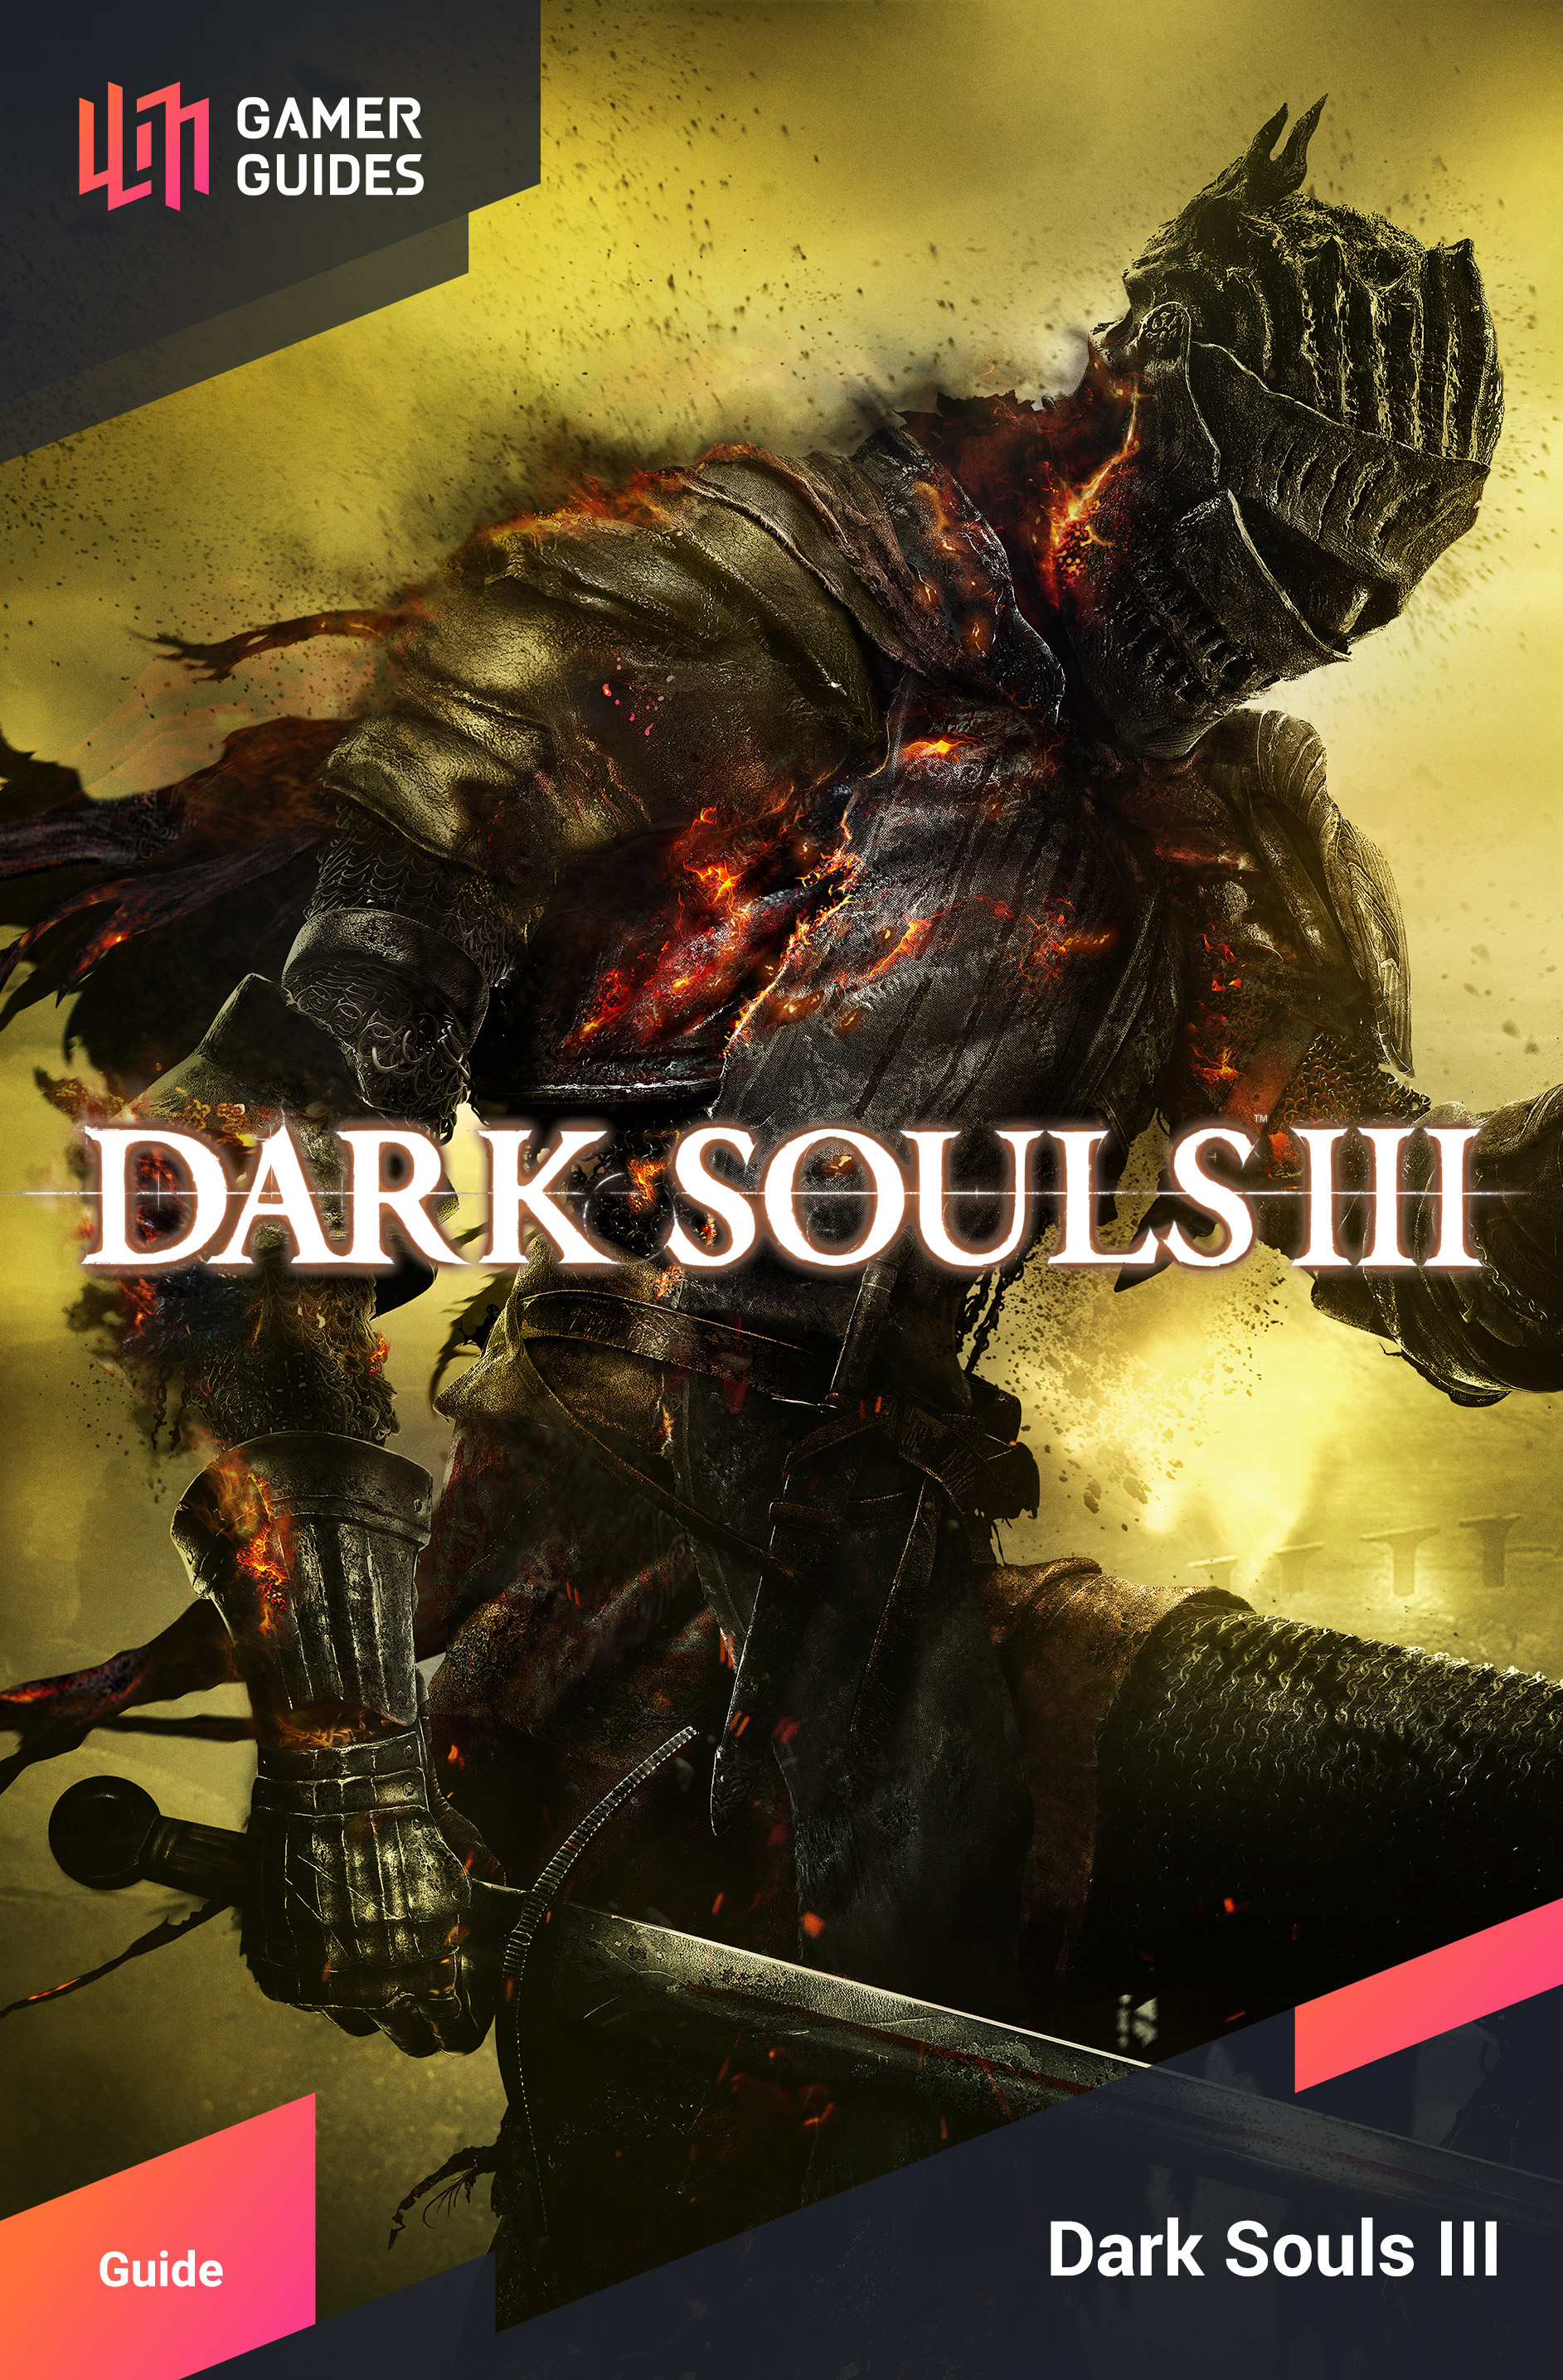 General Information Gameplay Dark Souls Iii Gamer Guides That dude just can't wait to die. gamer guides